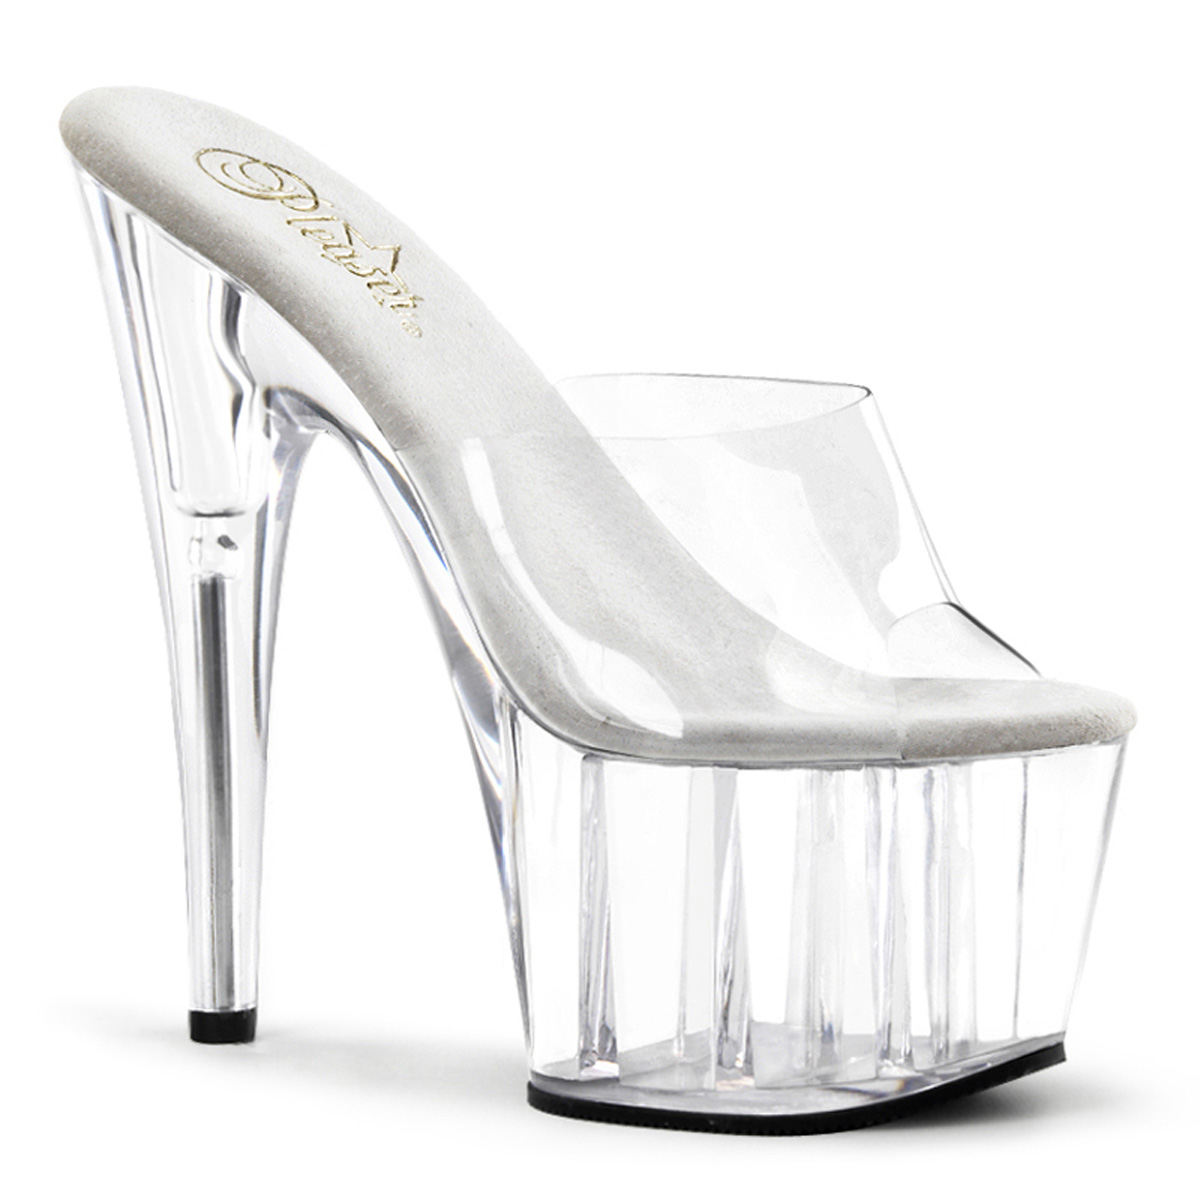 Pleaser Adore 701(Women's) -Clear/Clear Cheap Sale Amazing Price svUFfev